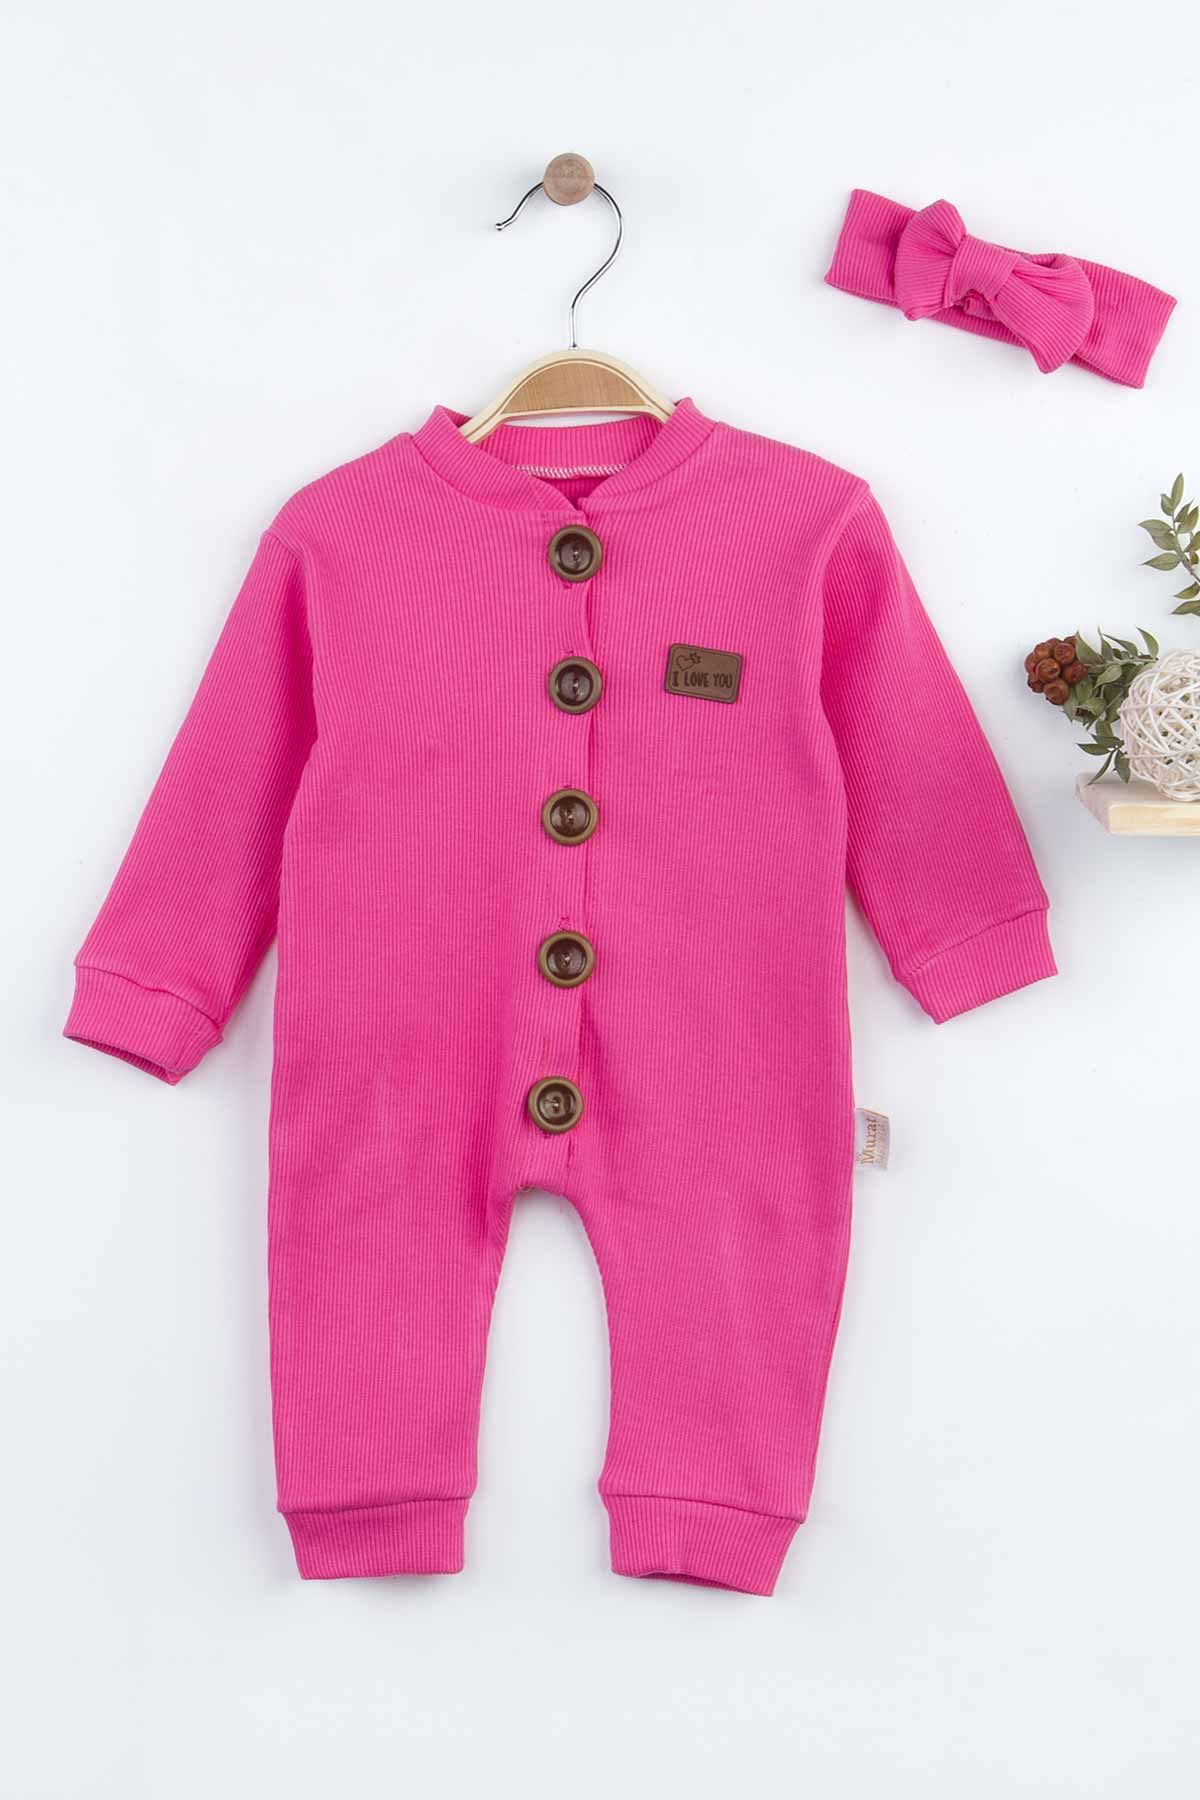 Fuchsia Baby Girl Rompers Babies Clothes Set Outfit Cotton Comfortable Underwear Hair bandanna New Season Girls Salopet Model